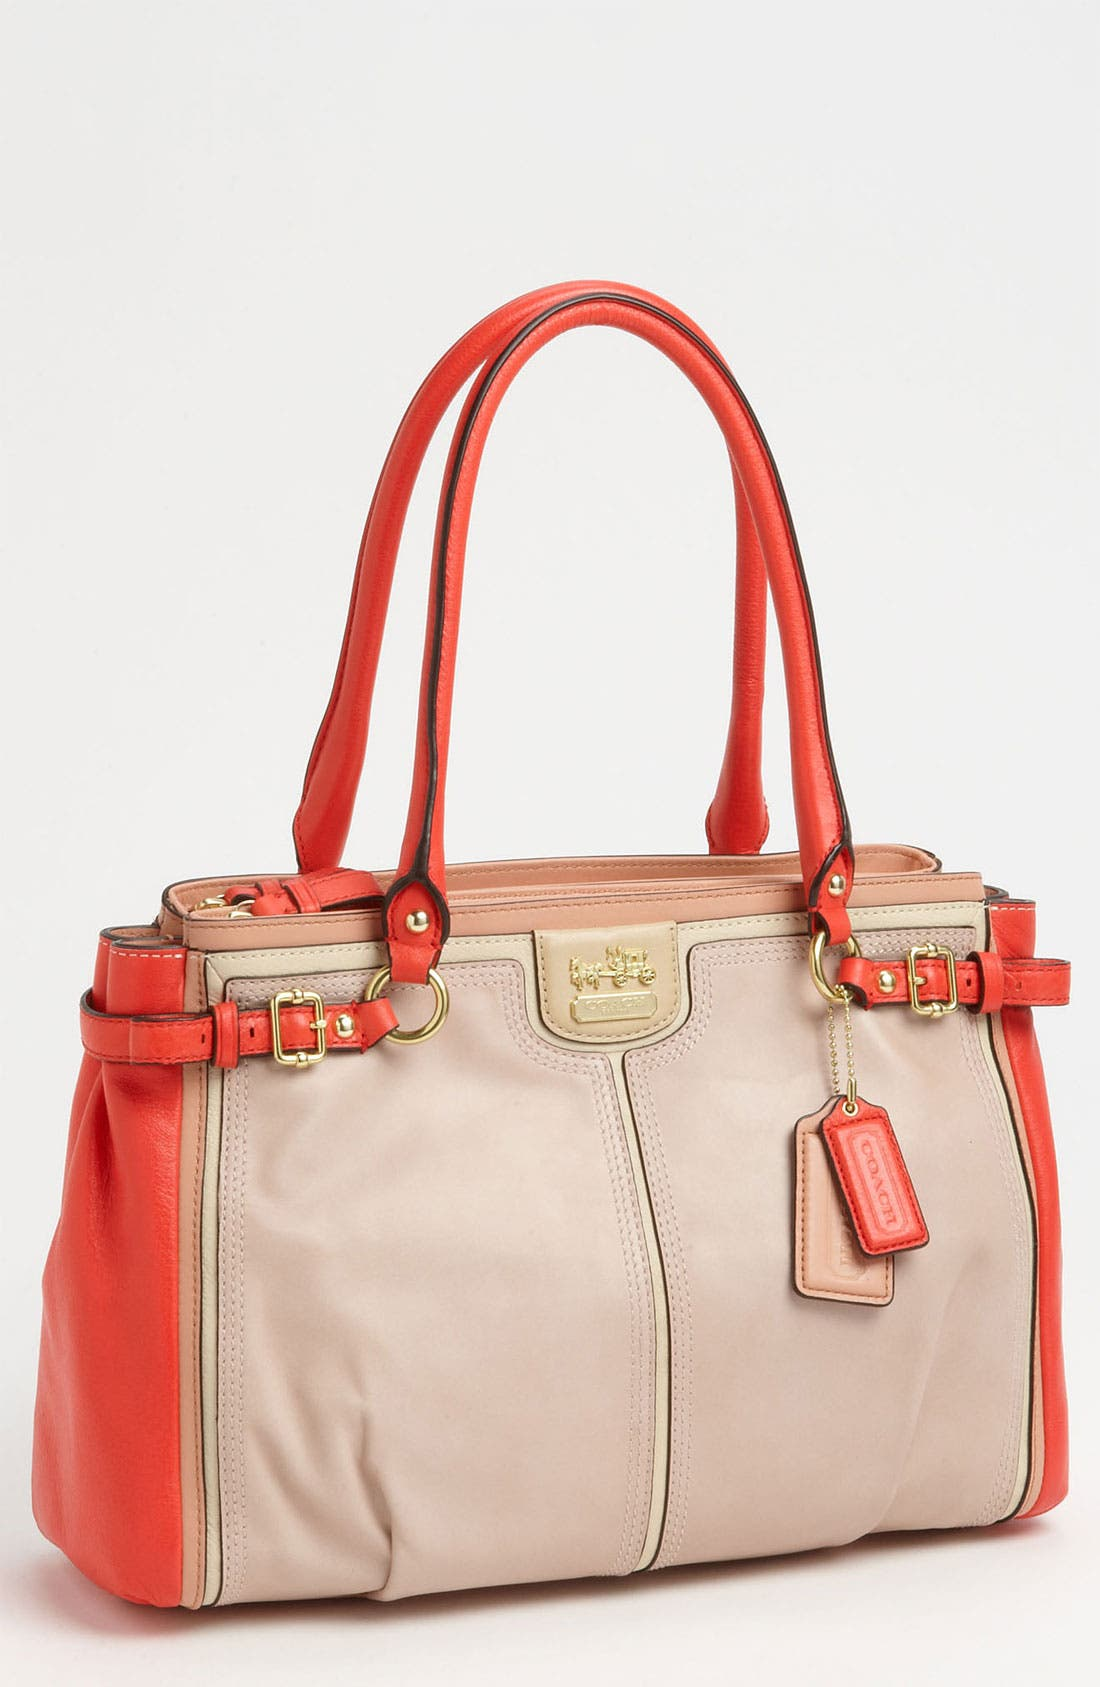 Main Image - COACH 'Madison - Kara' Colorblock Satchel